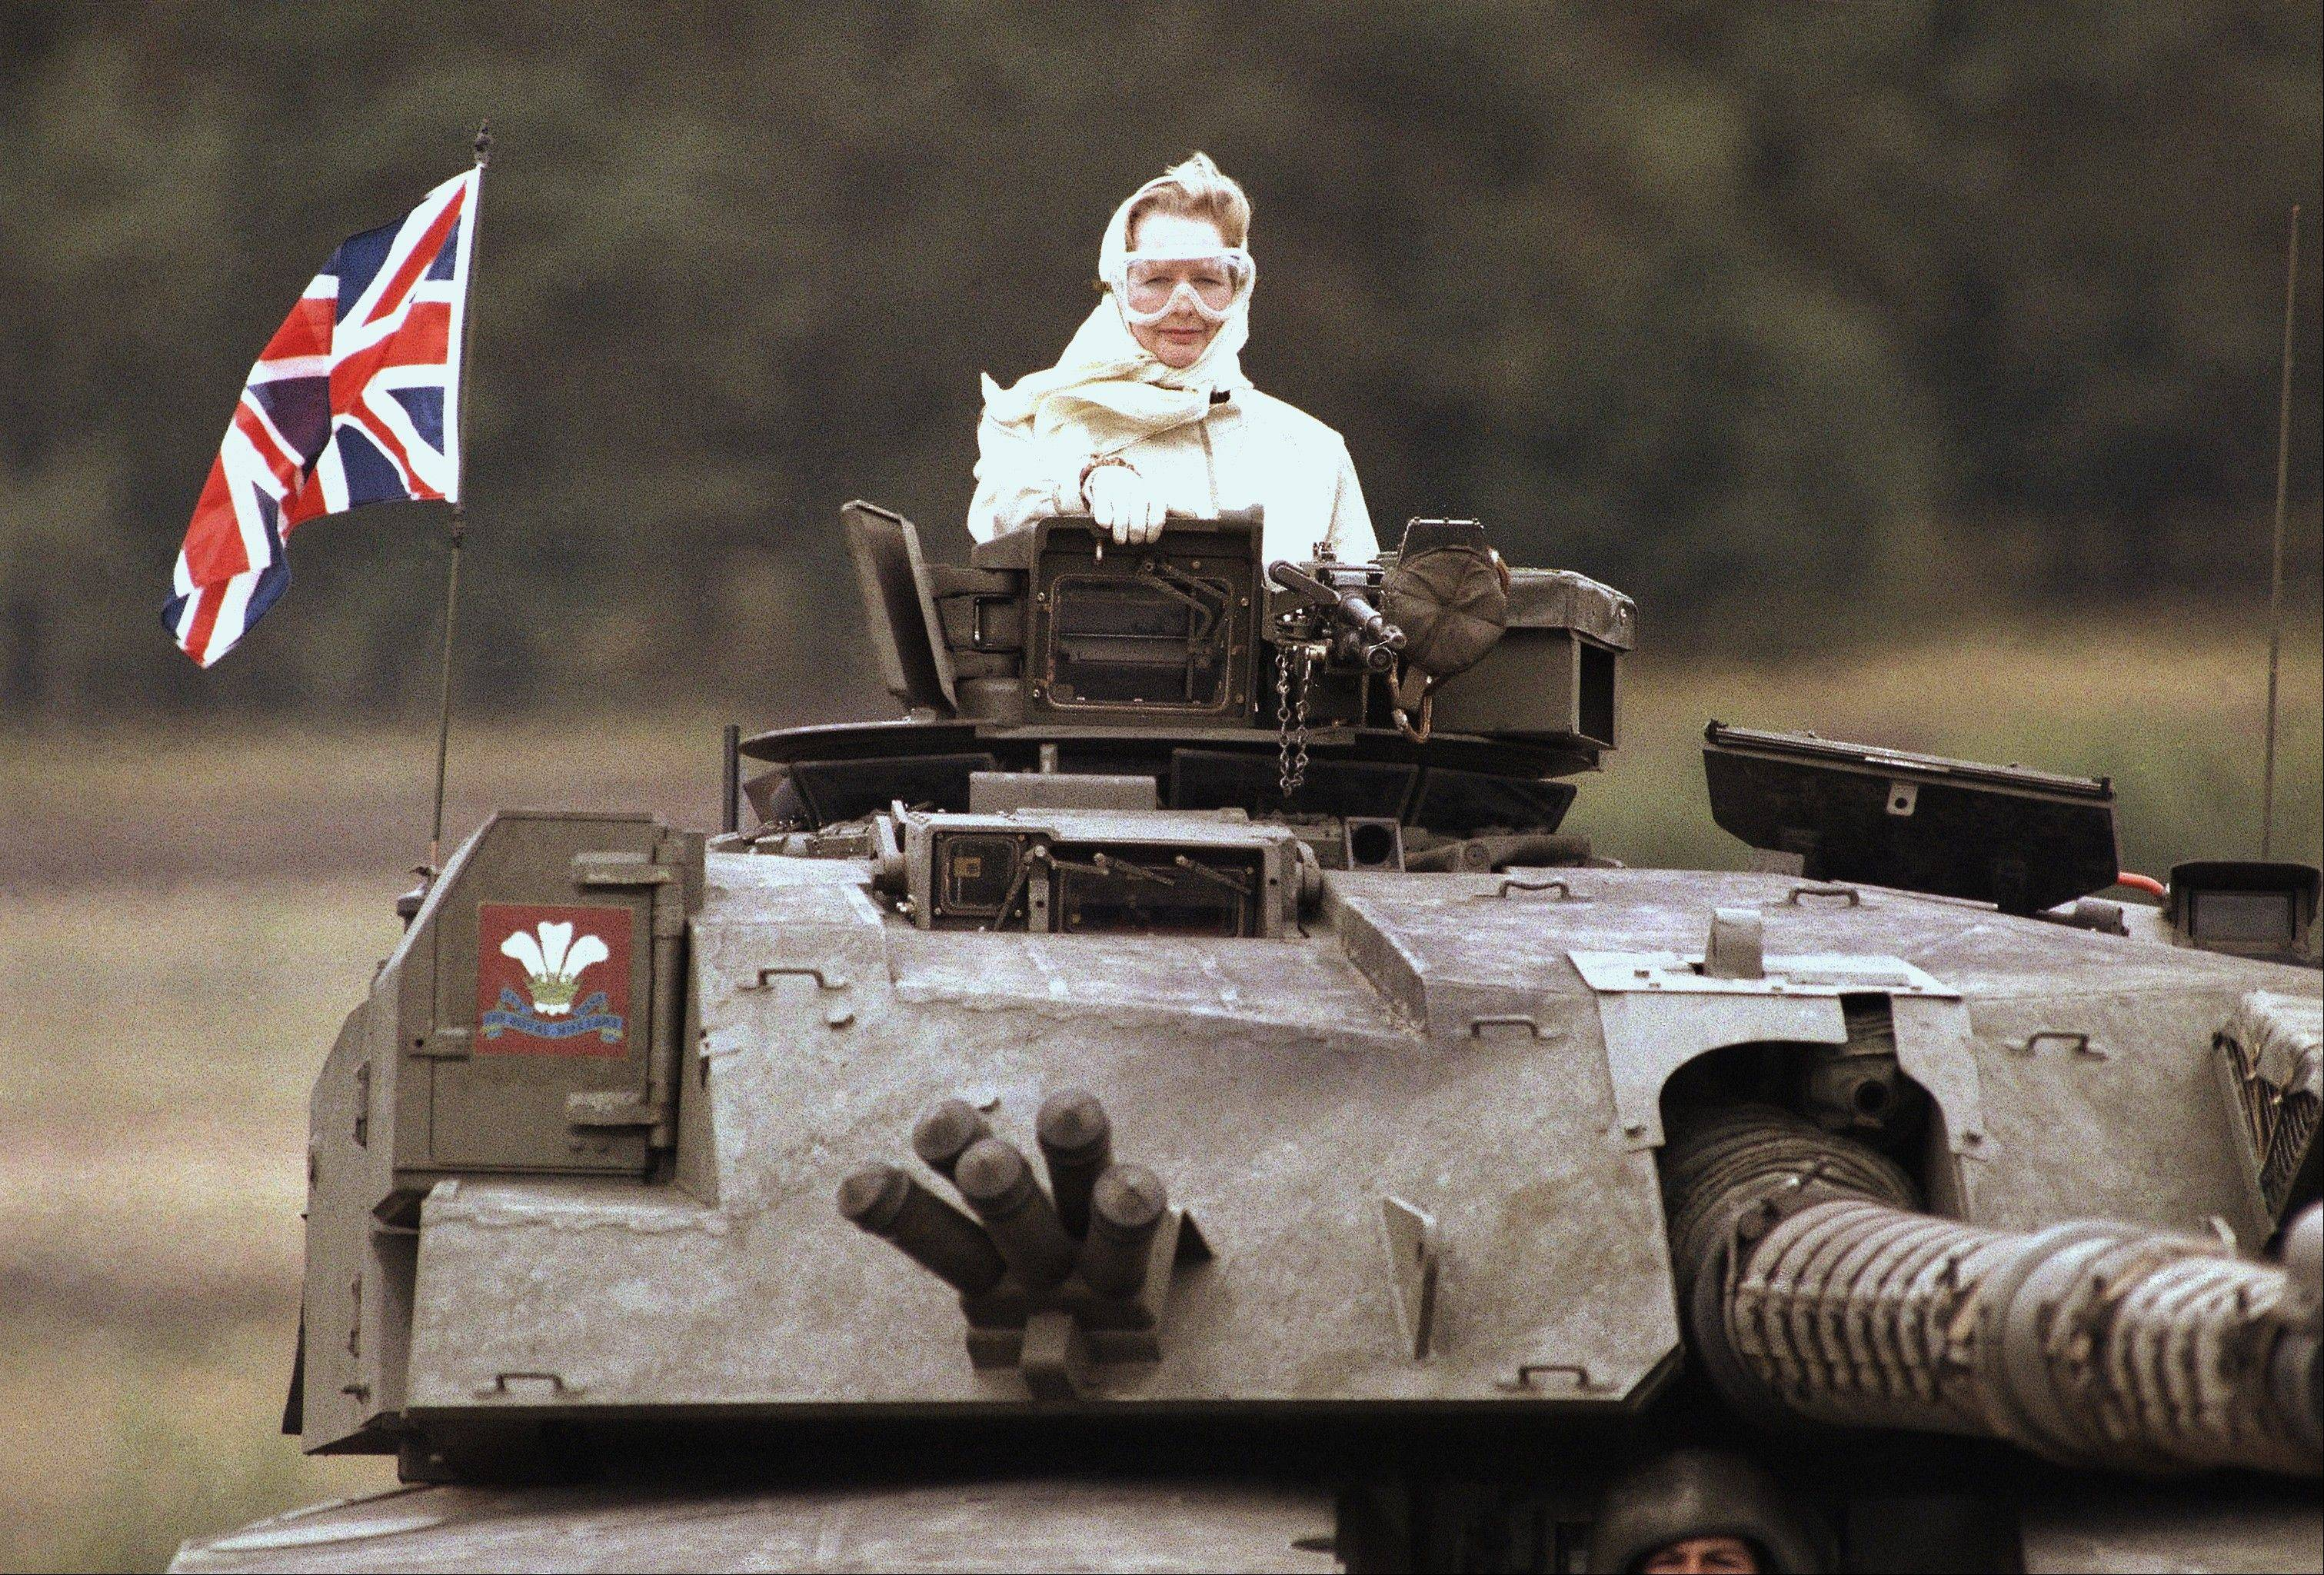 British Prime Minister Margaret Thatcher stands in a British tank during a visit to British forces in Fallingbostel, some 120 km (70 miles) south of Hamburg, Germany. on Sept. 17, 1986. Thatchers former spokesman, Tim Bell, said that the former British Prime Minister Margaret Thatcher had died Monday morning, April 8, 2013, of a stroke. She was 87.